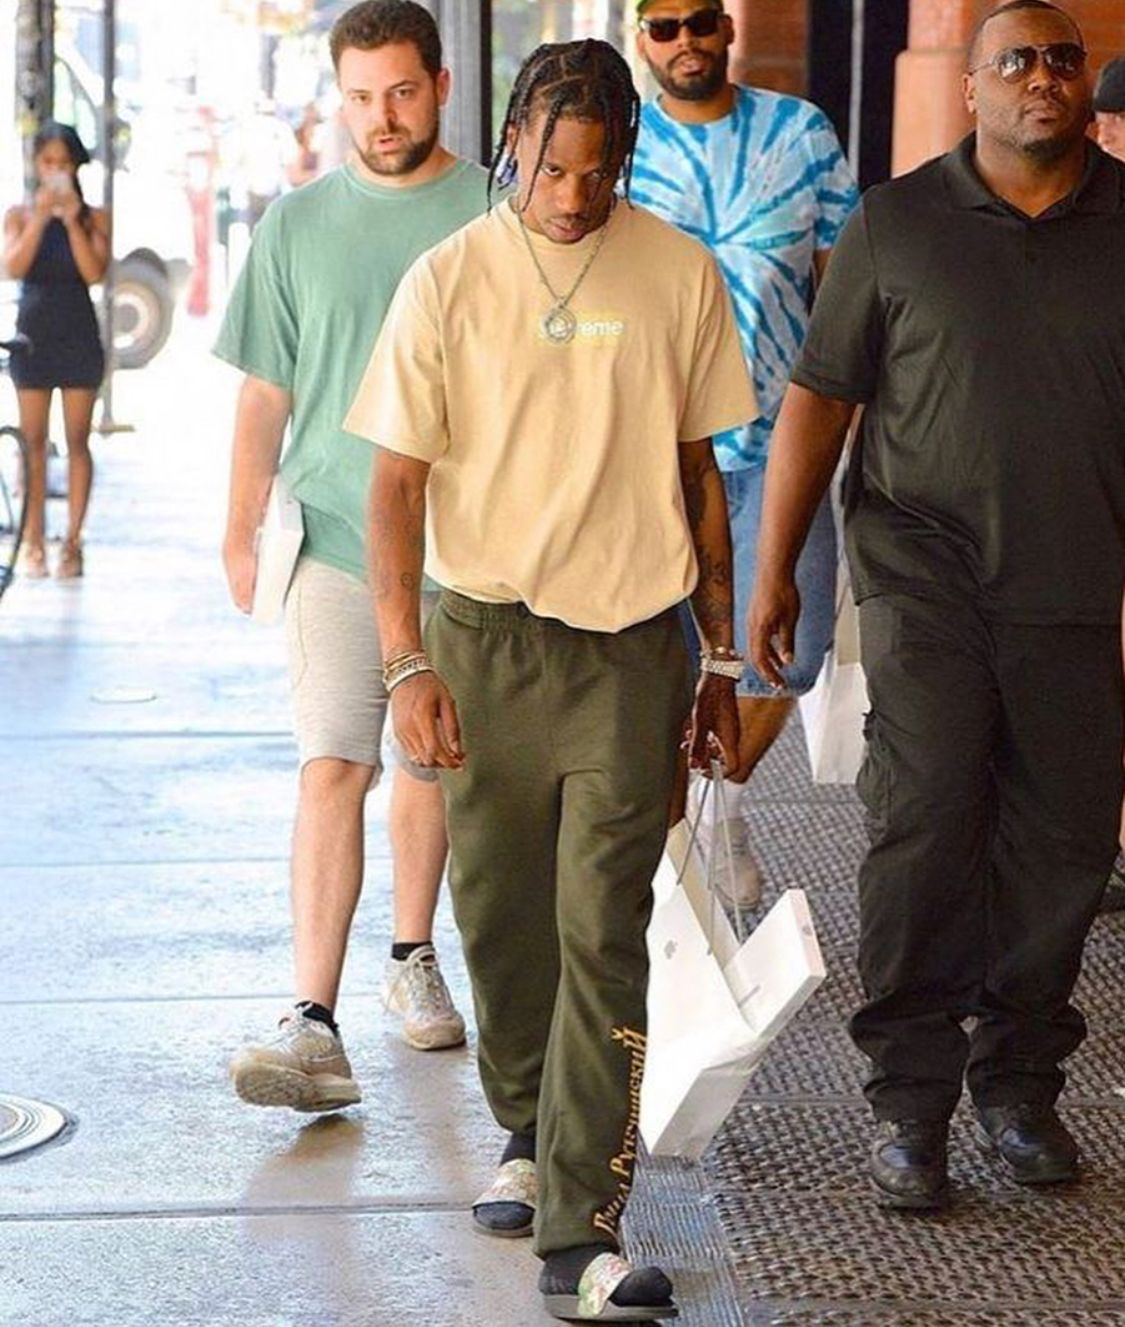 c65f99d10 Pin by DailyShoota on Travis in 2019 | Travis scott, Travis scott ...